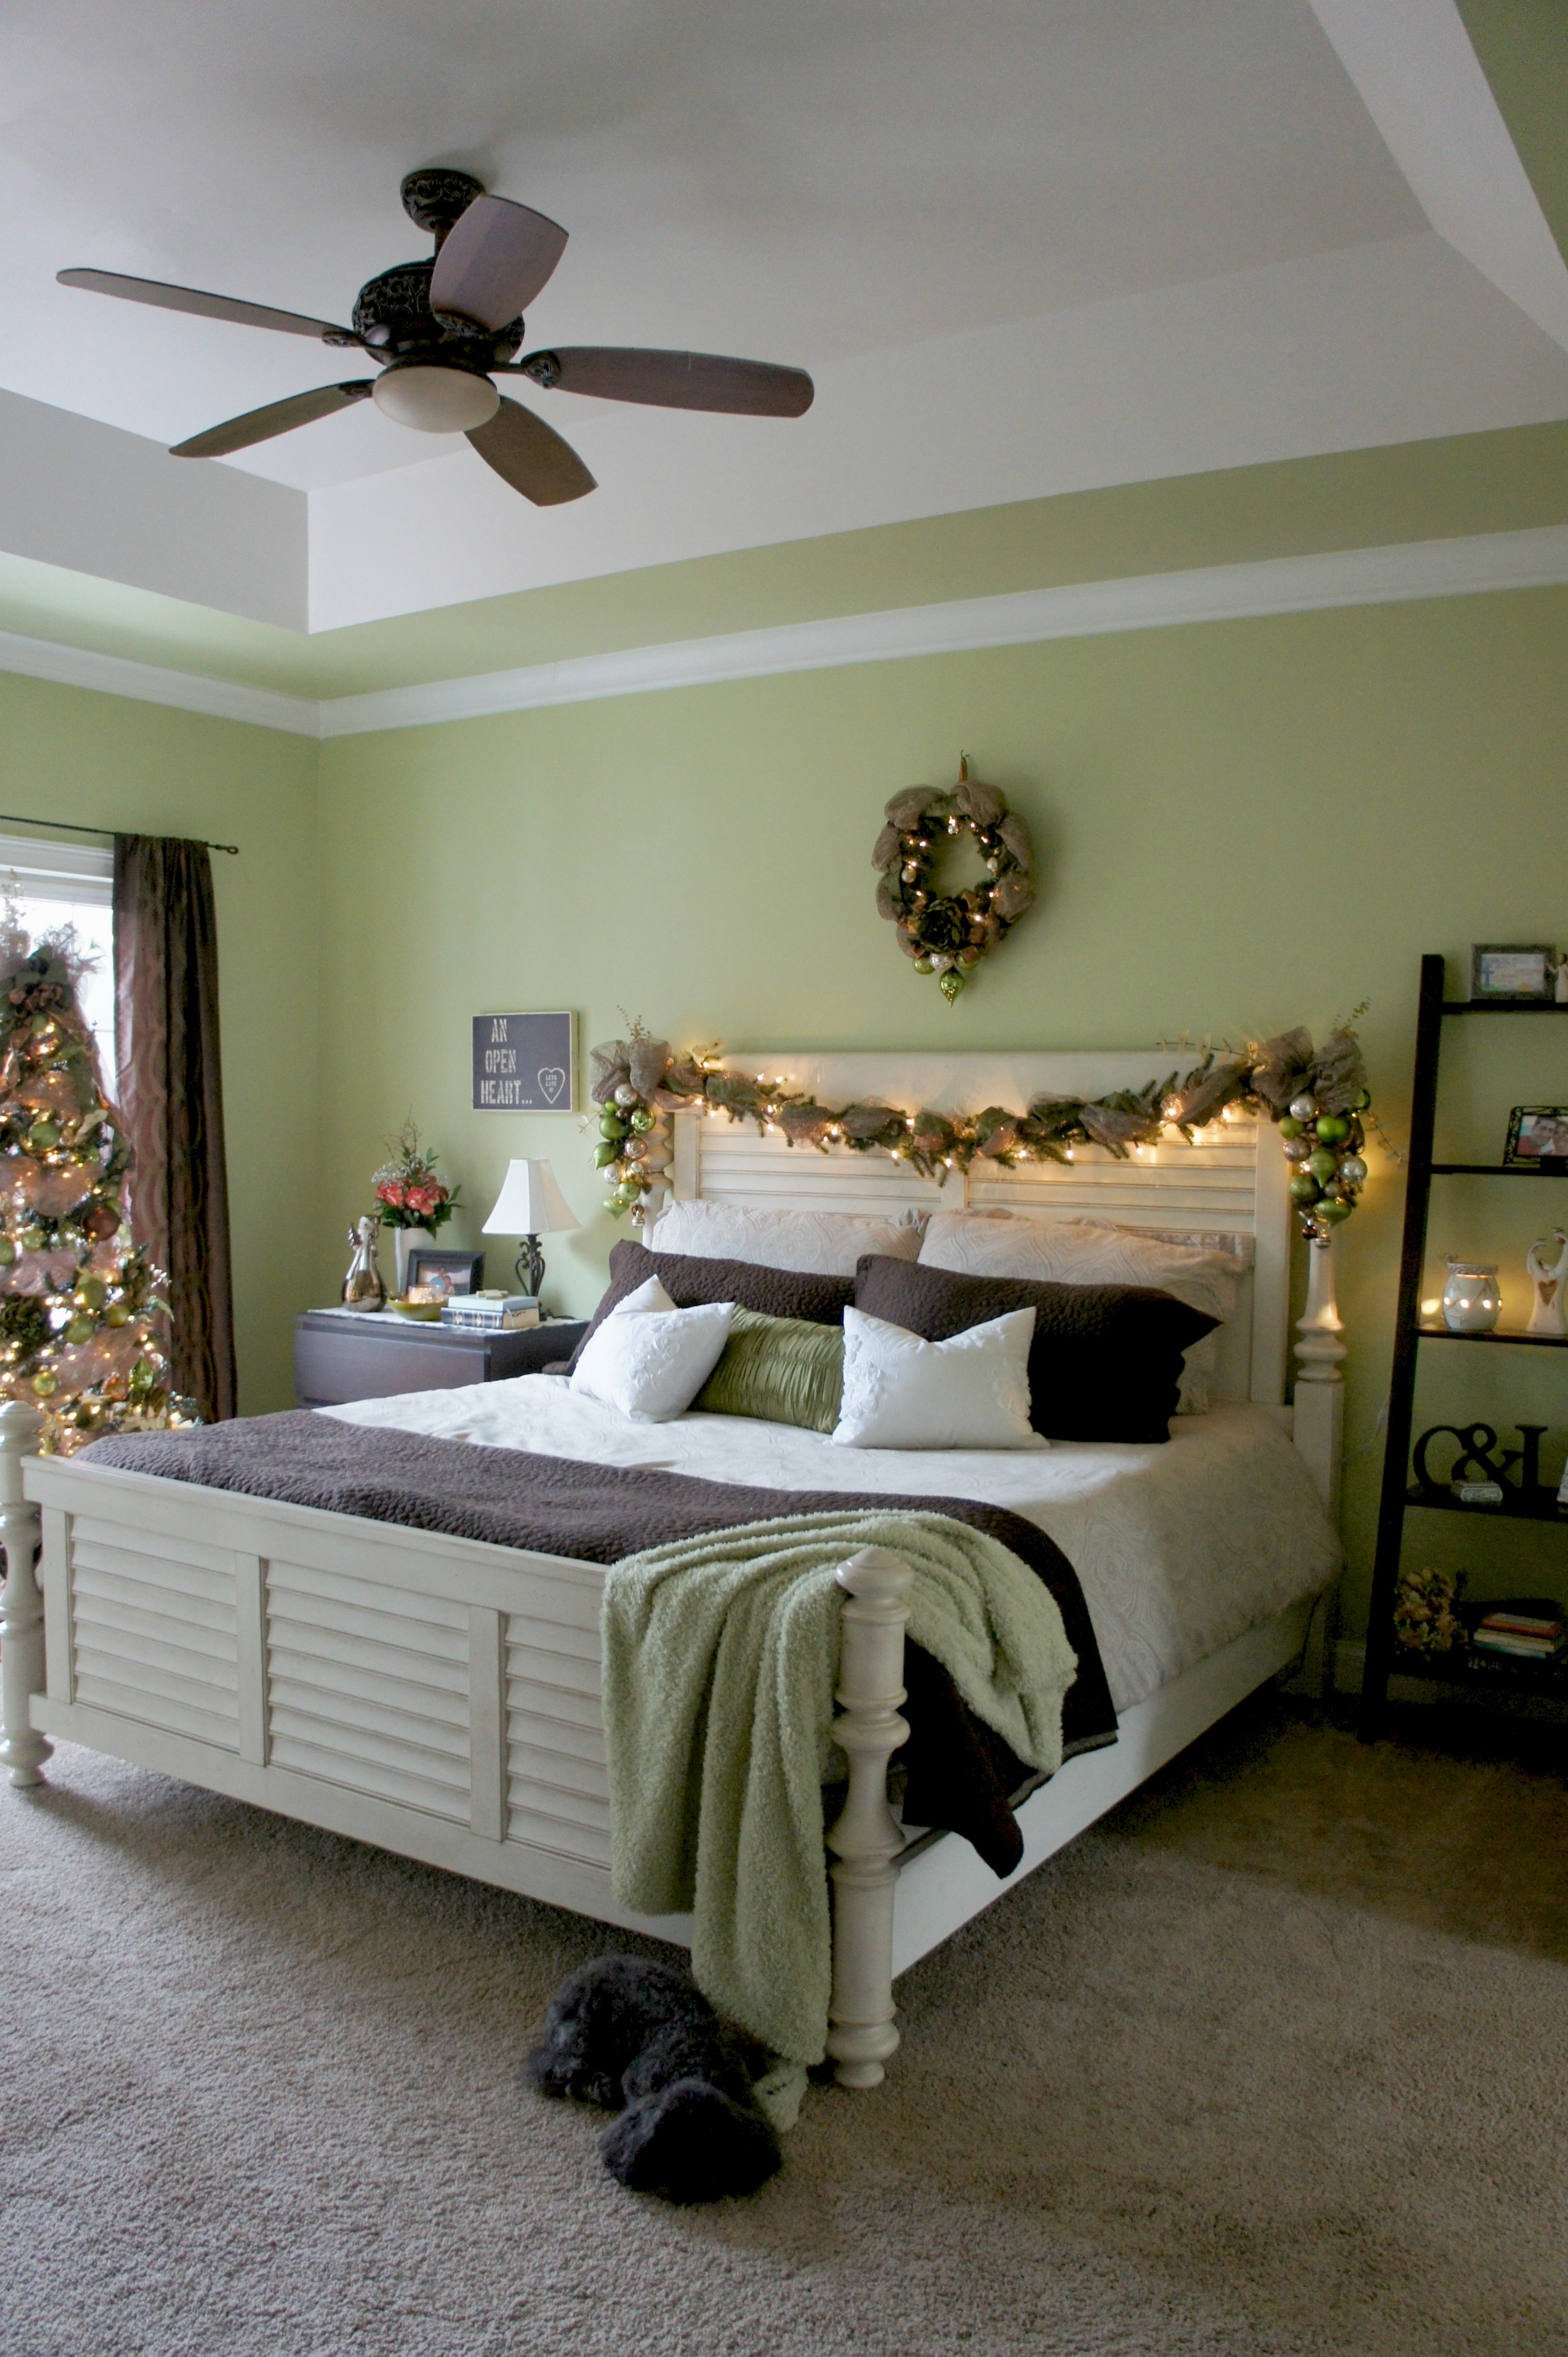 A Christmas Bedroom